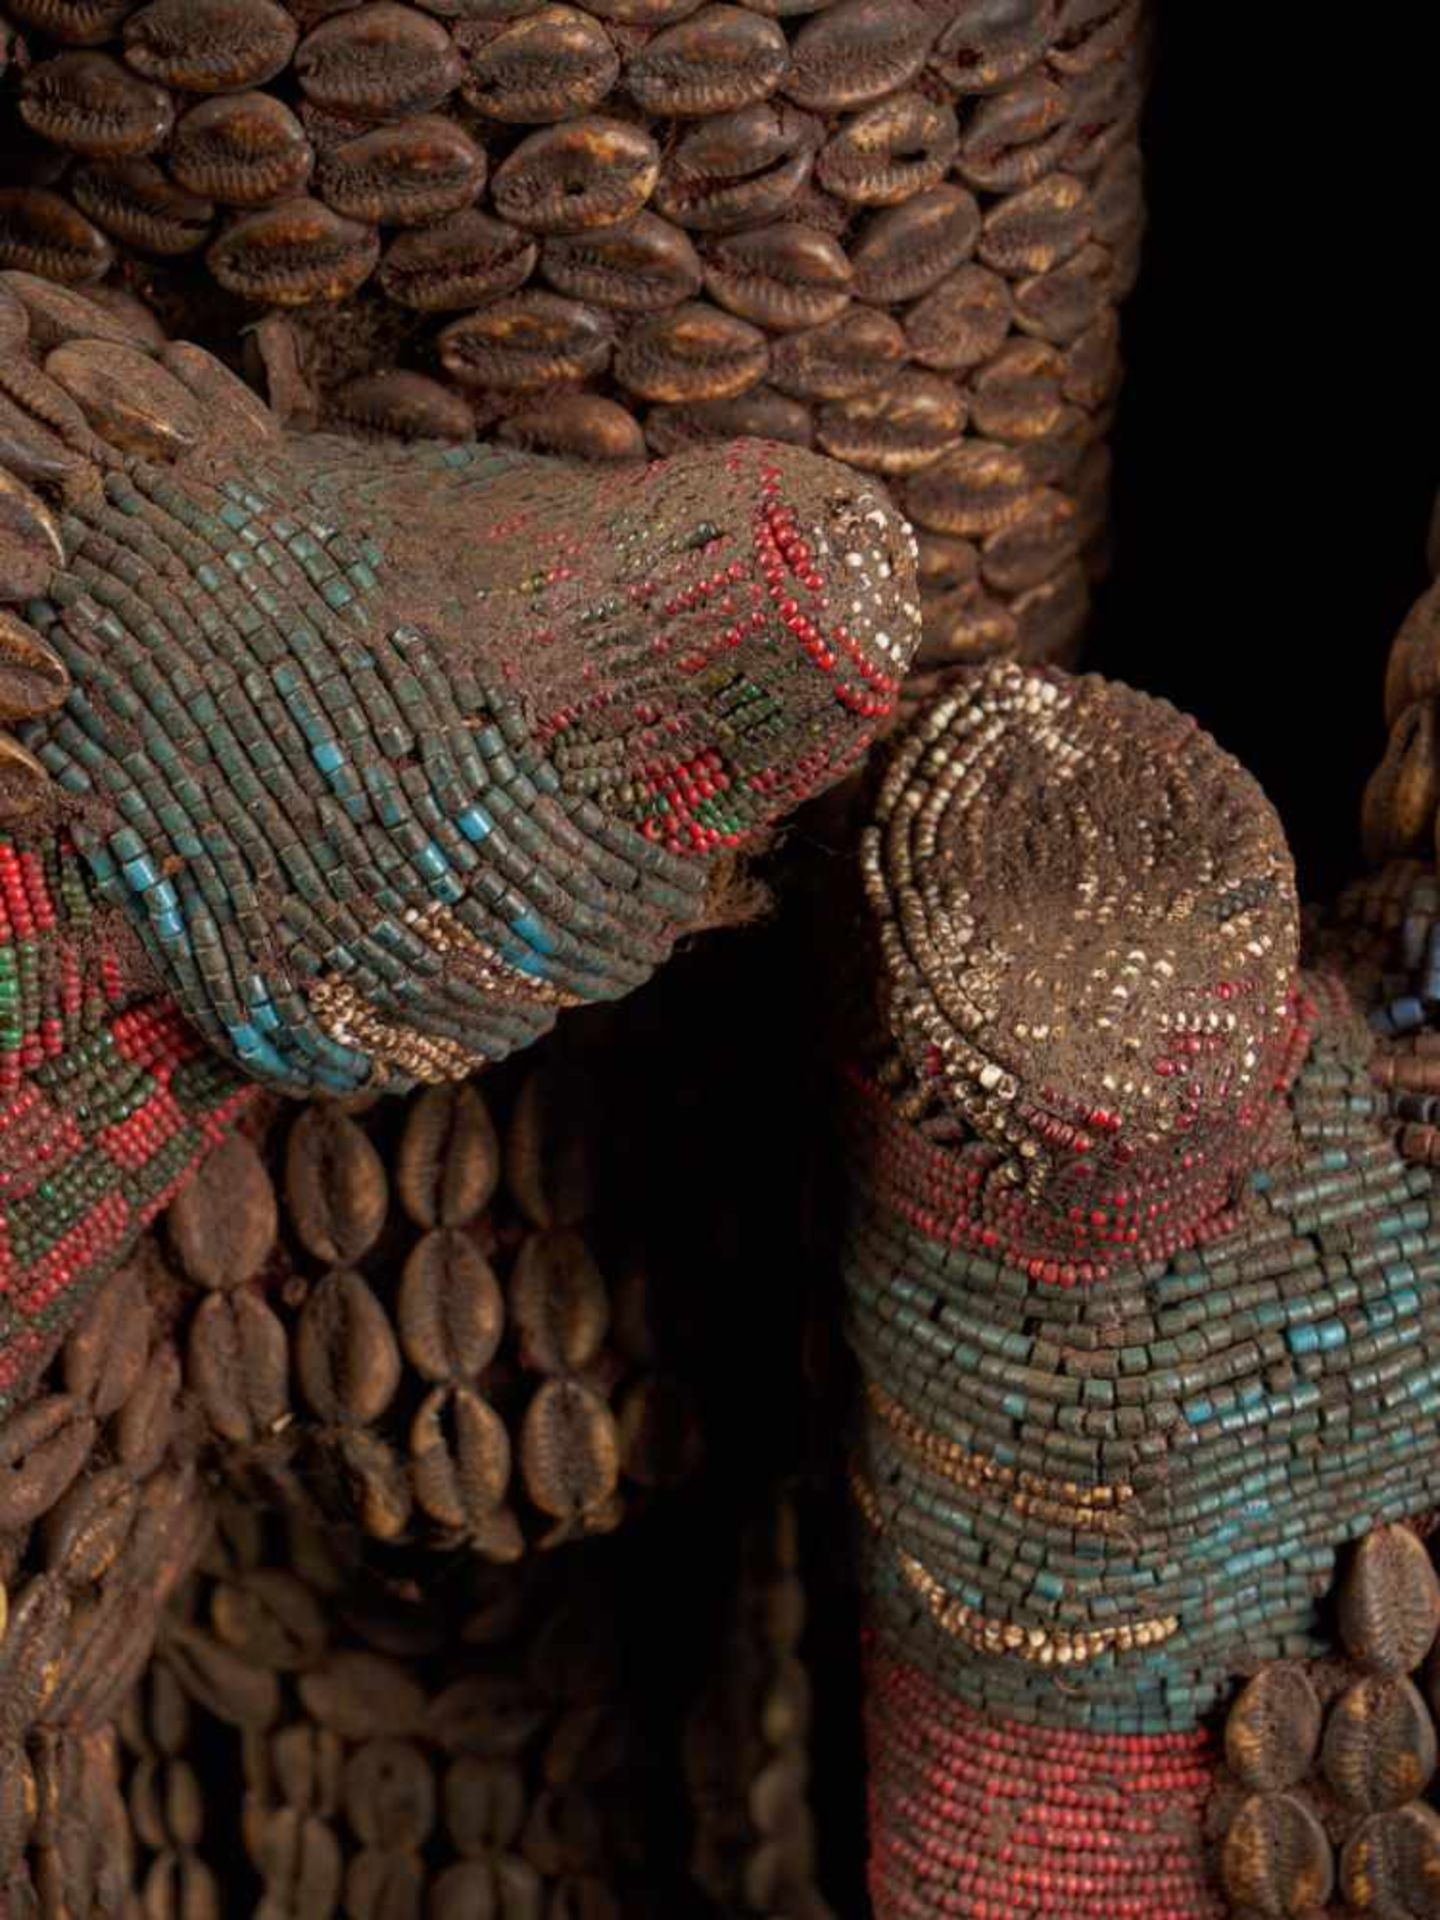 Beaded Royal Figure Holding Wine Vessel - Tribal ArtThis exquisite beaded figure of a man holding - Bild 8 aus 8